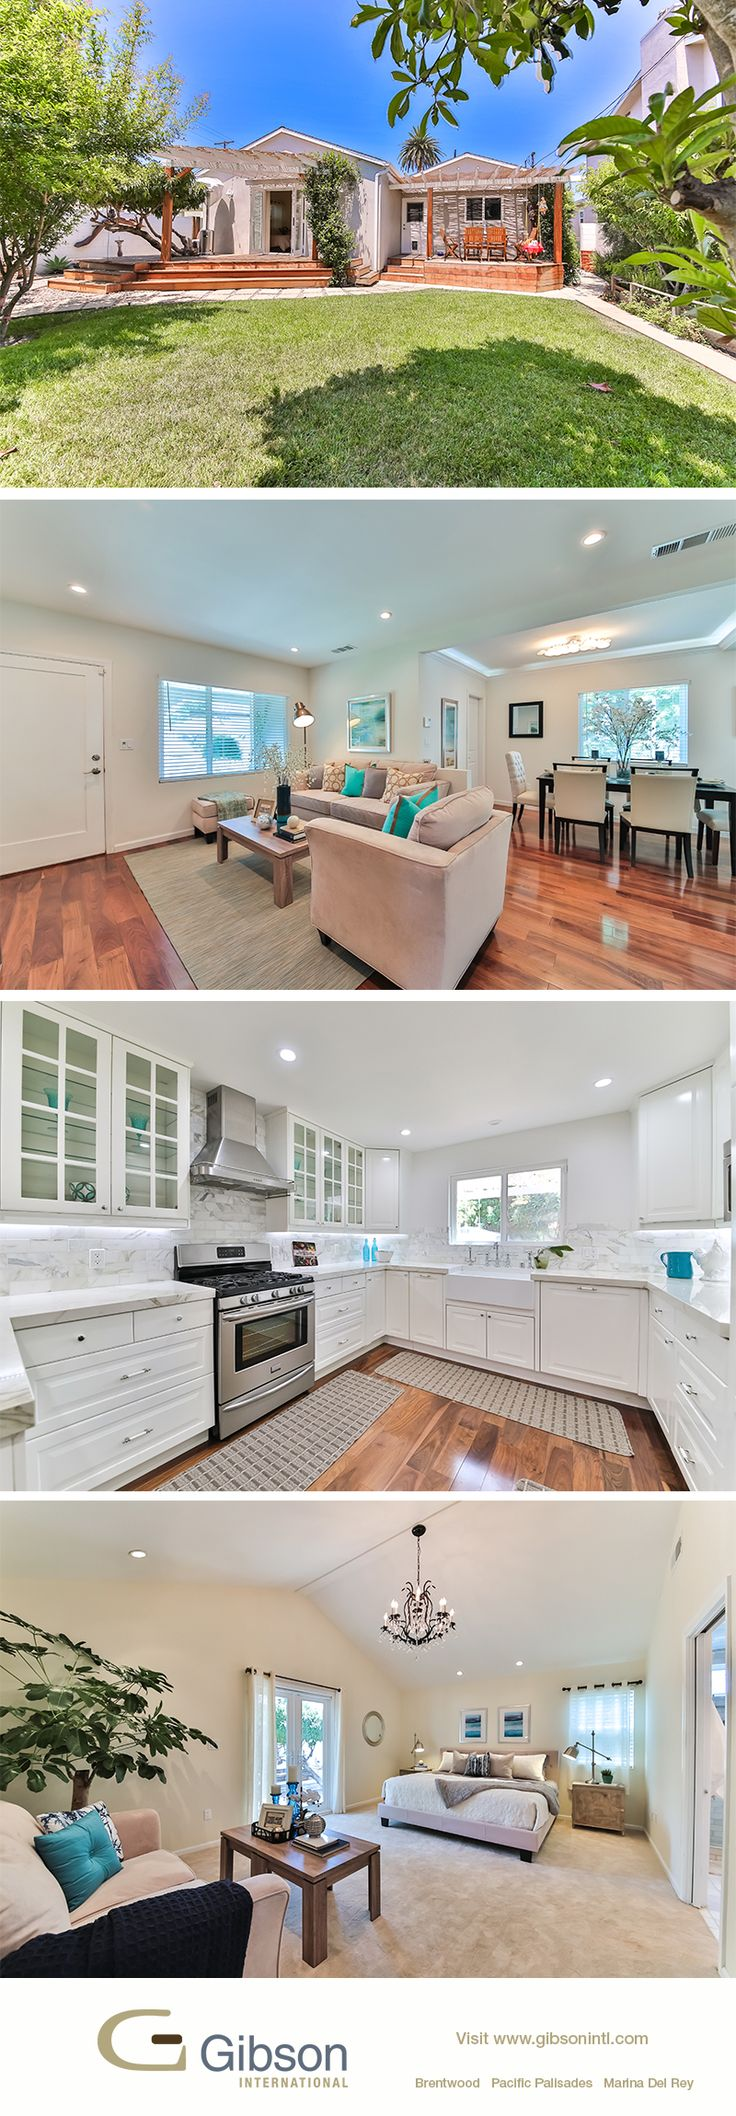 Everything Is New Inside Your Culver City Home Rebuilt In Sept. Rustic  Charmer With Tranquil Backyard Garden. Open With Agents Peter And Ty Bergman .